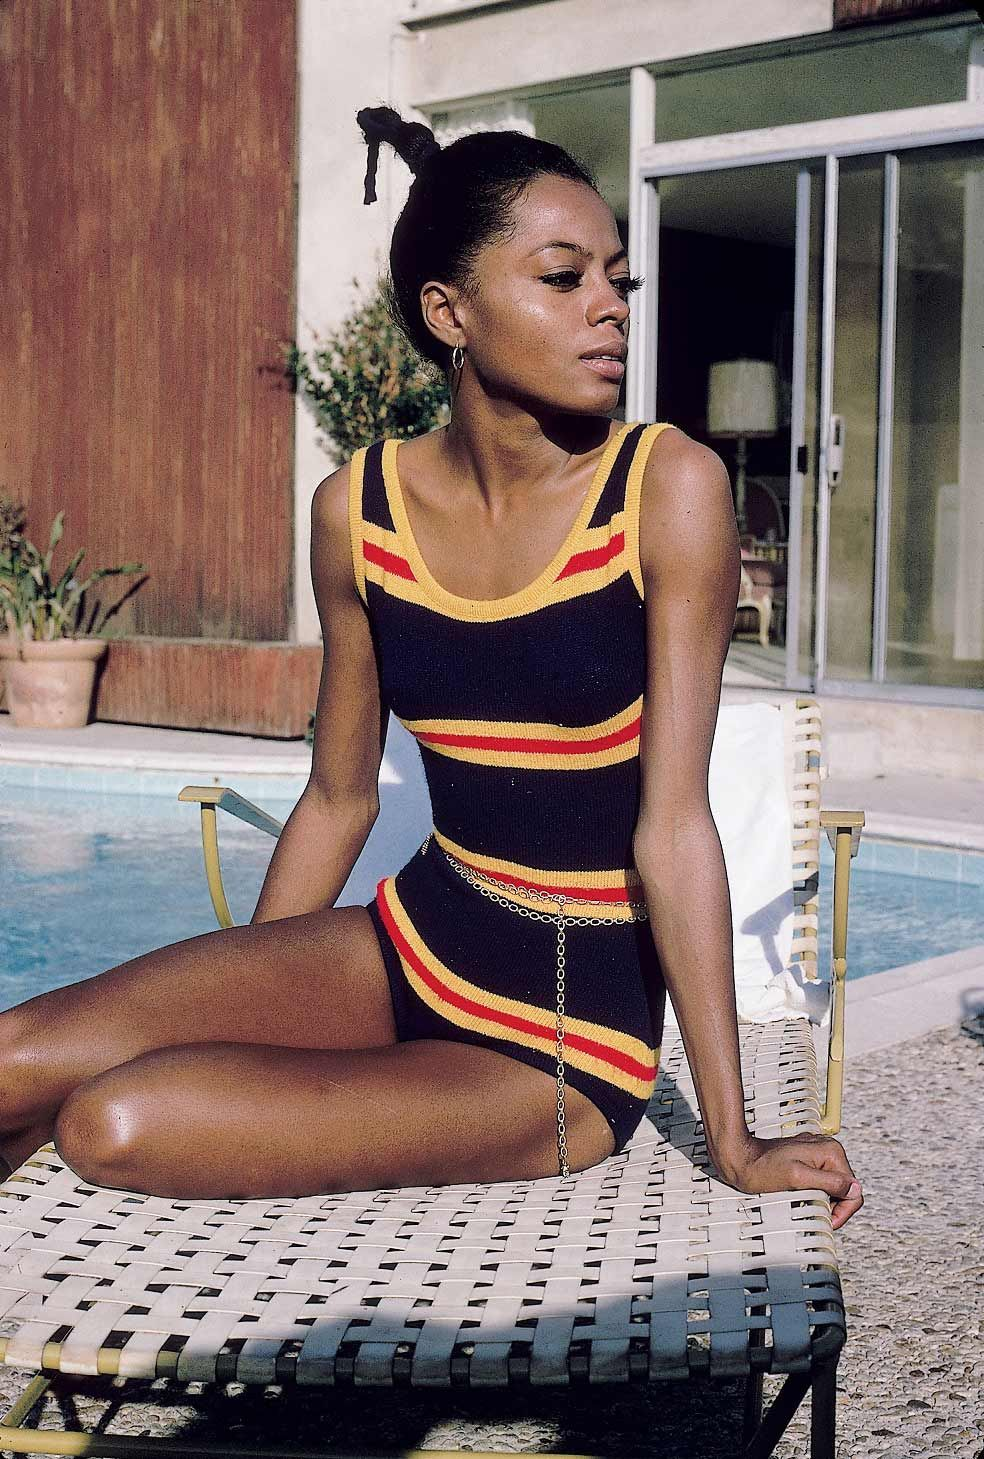 Diana Ross by Leroy Patton, 1970